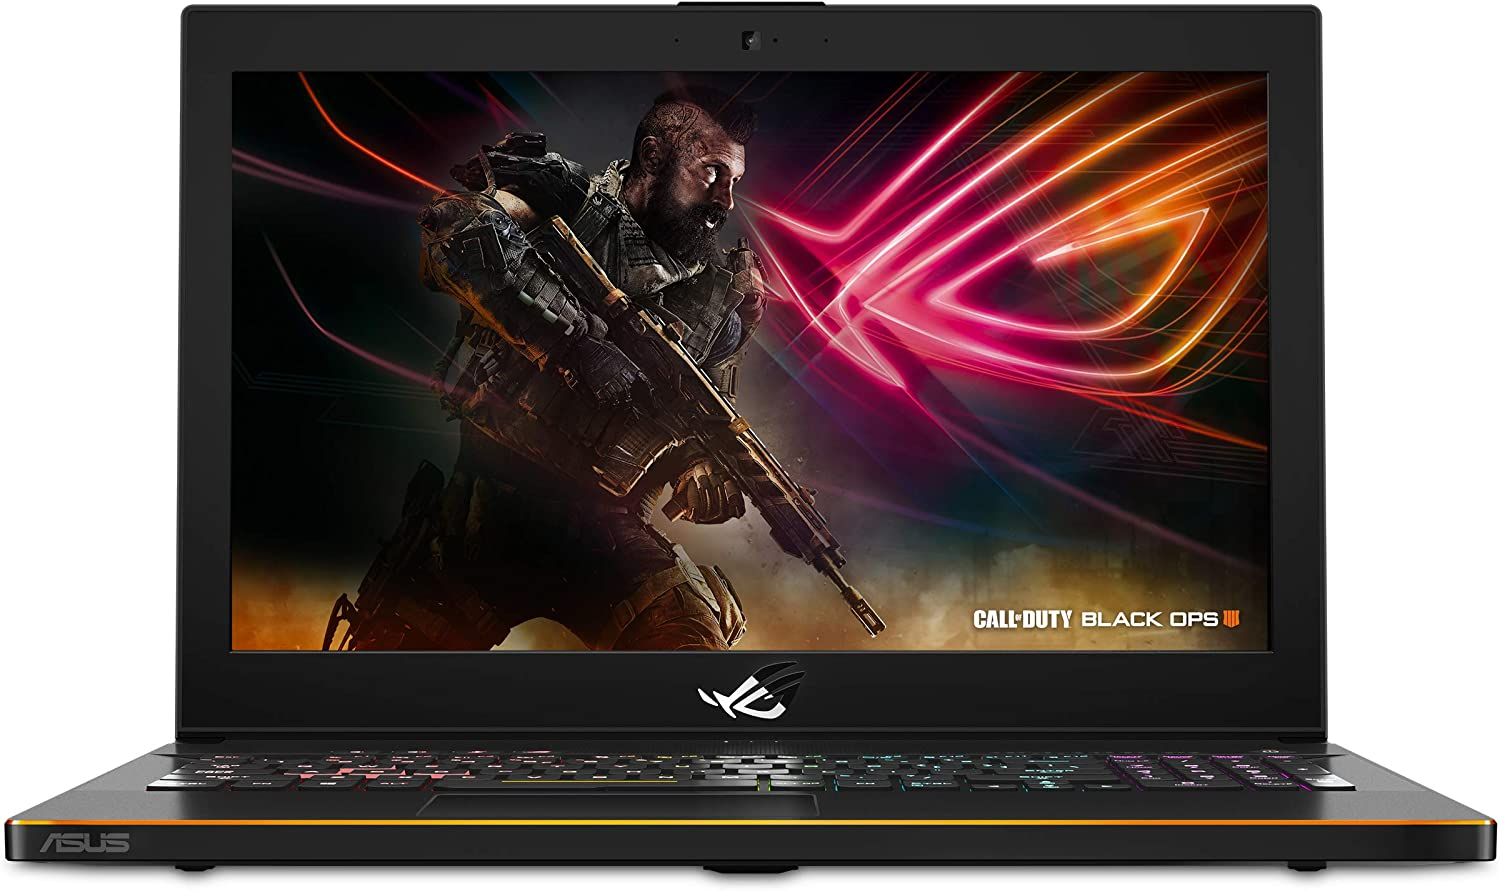 Best 144Hz Laptops for Smooth Amazing Gaming in 2021